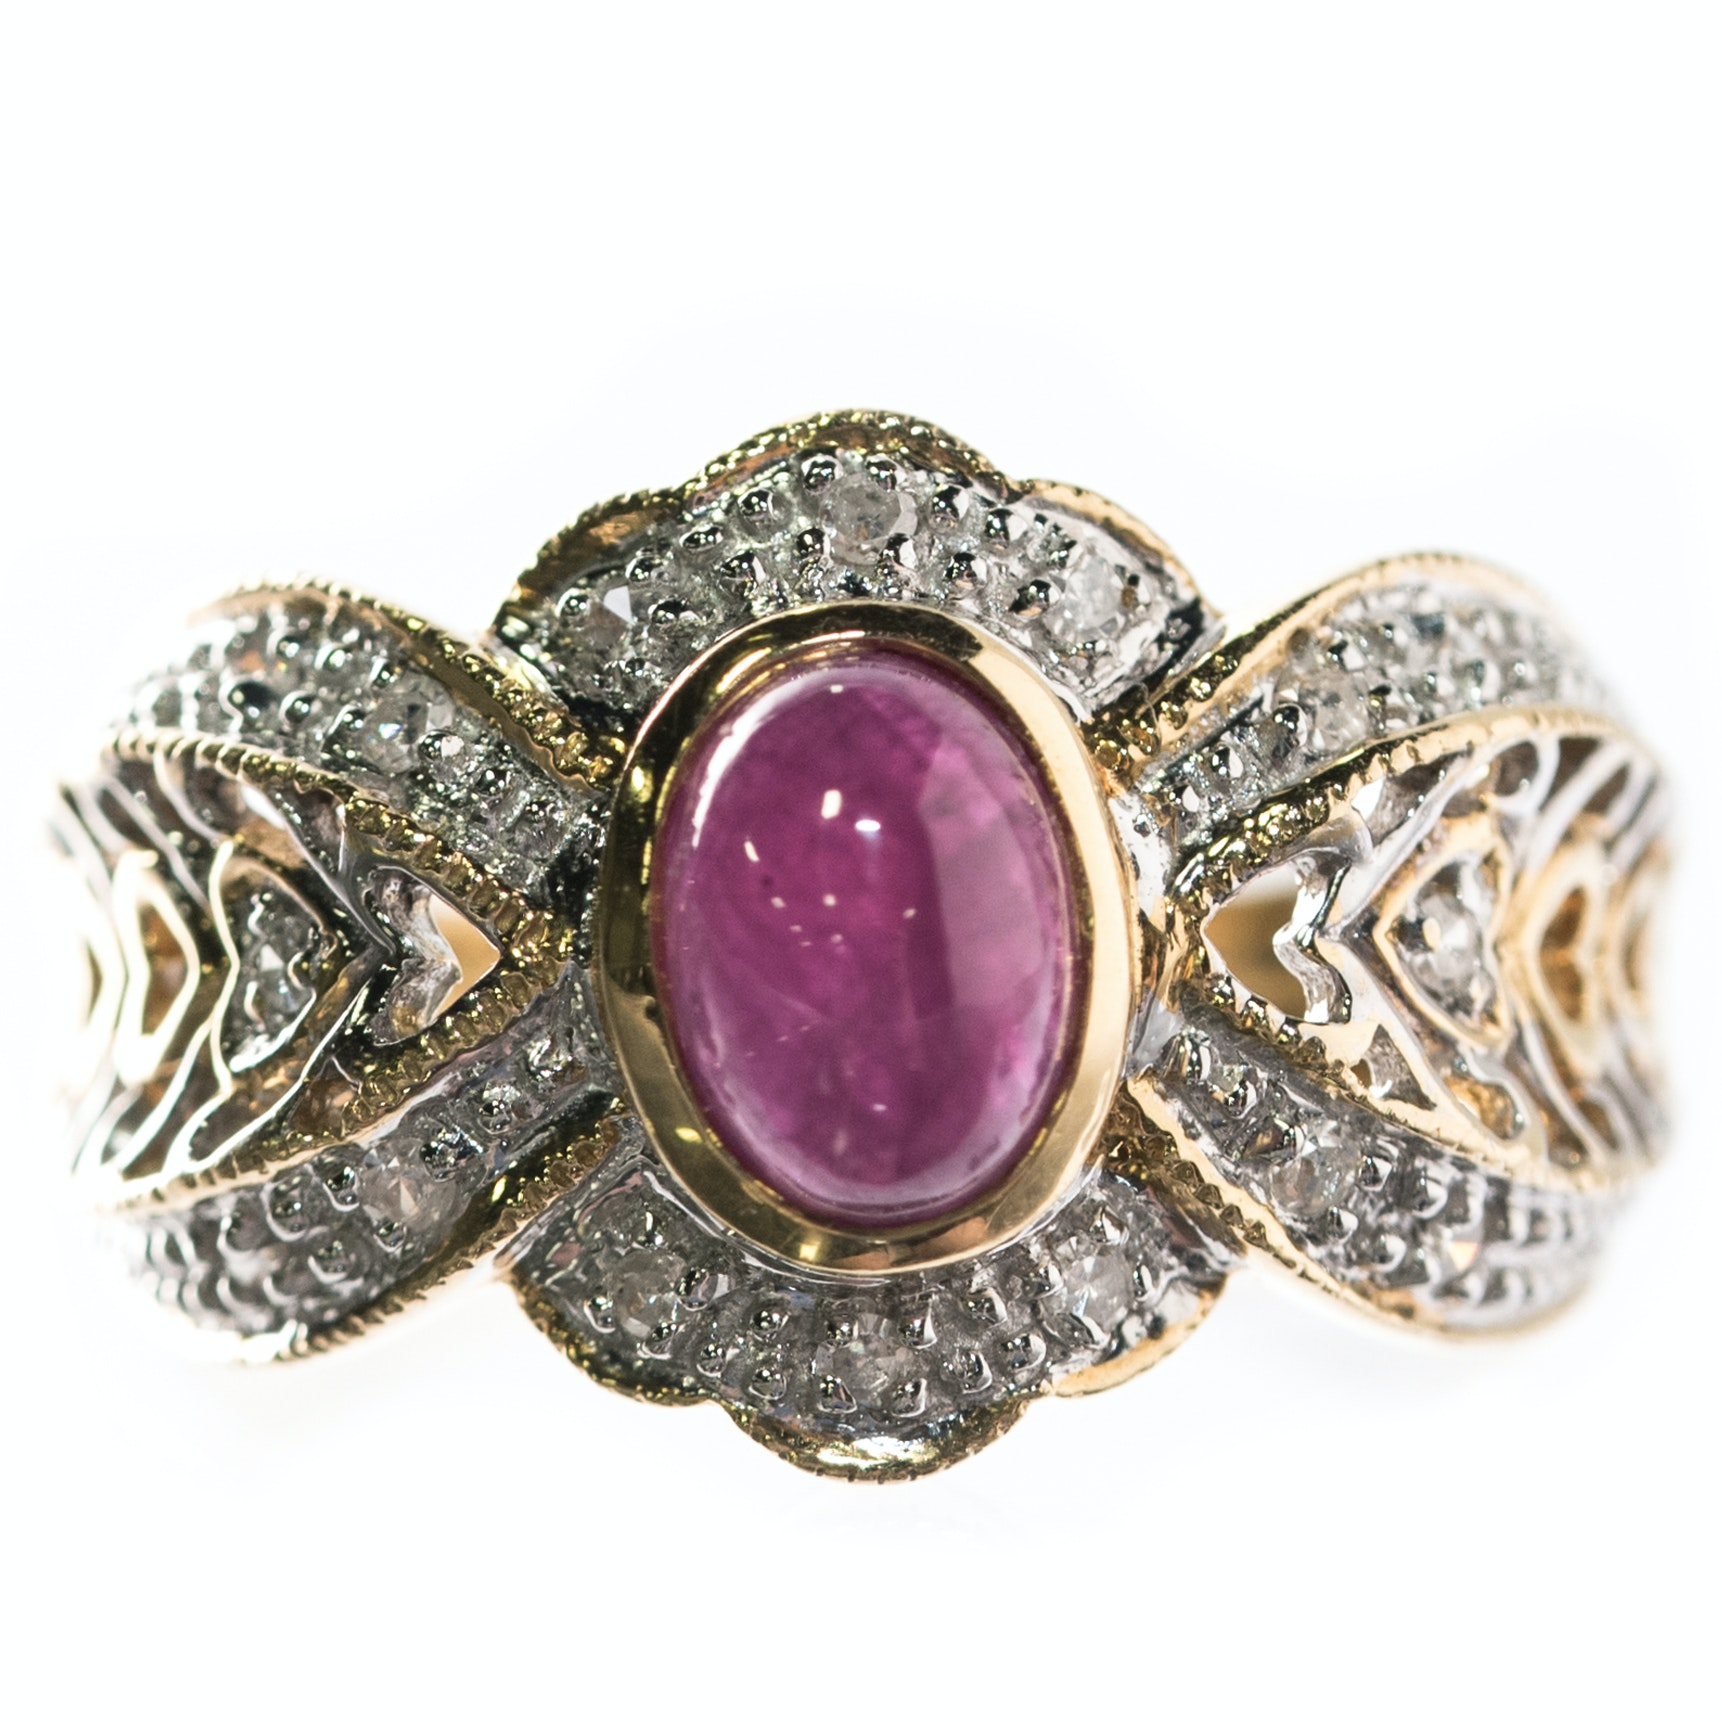 18K Yellow Gold, 18K White Gold, 1.55 CT Ruby, and Diamond Ring